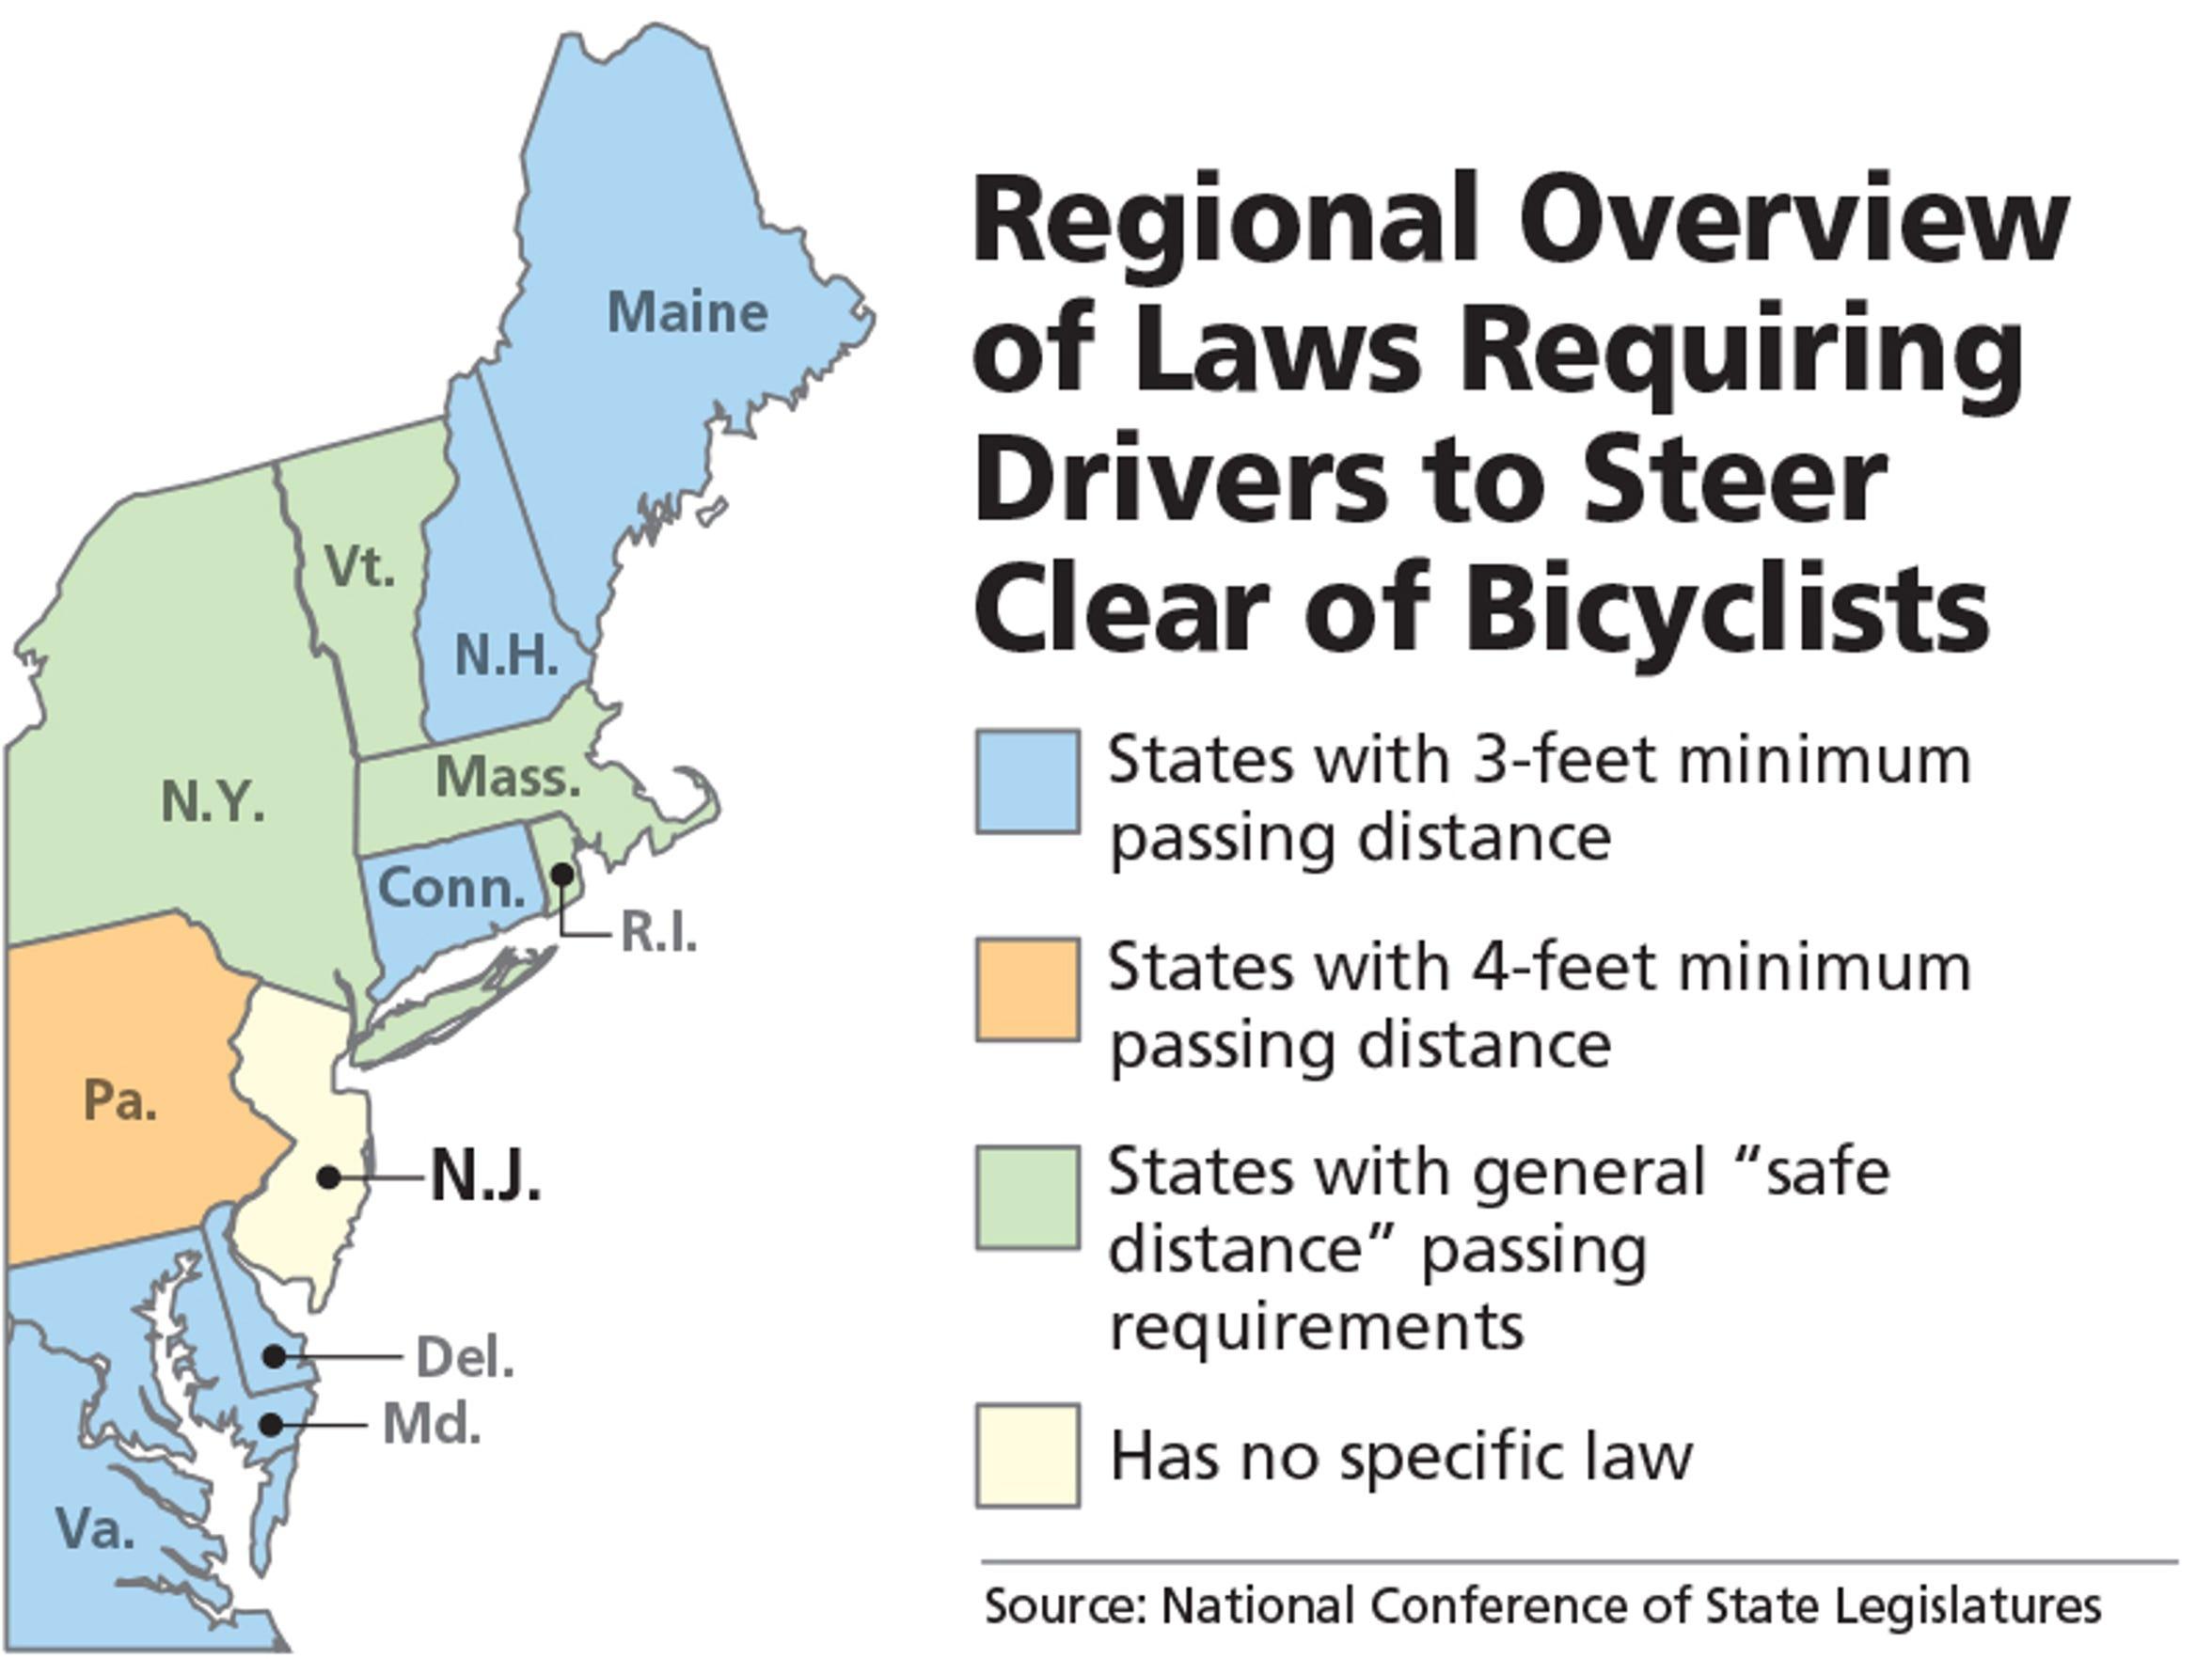 Overview of law requiring drivers to steer clear of